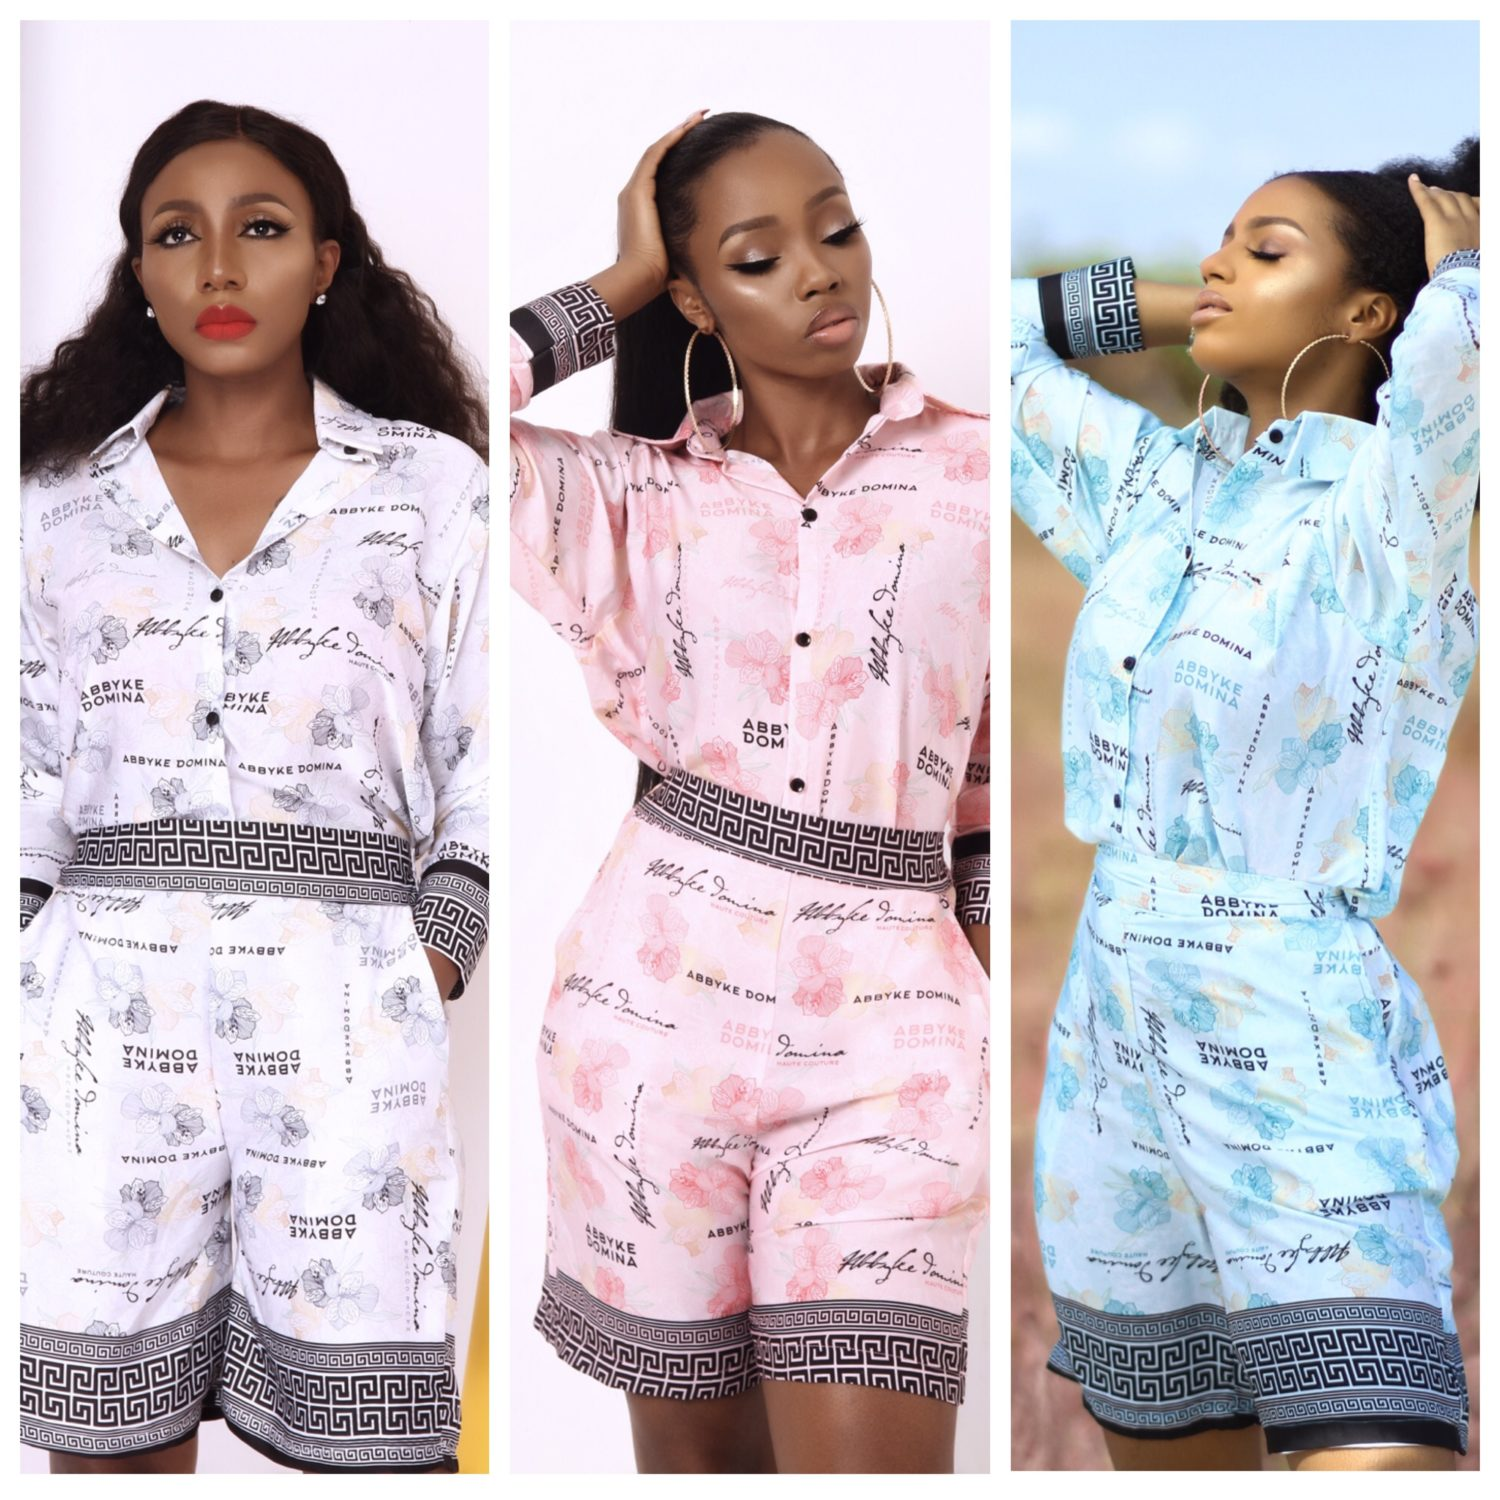 Abbyke Domina 'Tres Chic' Collection